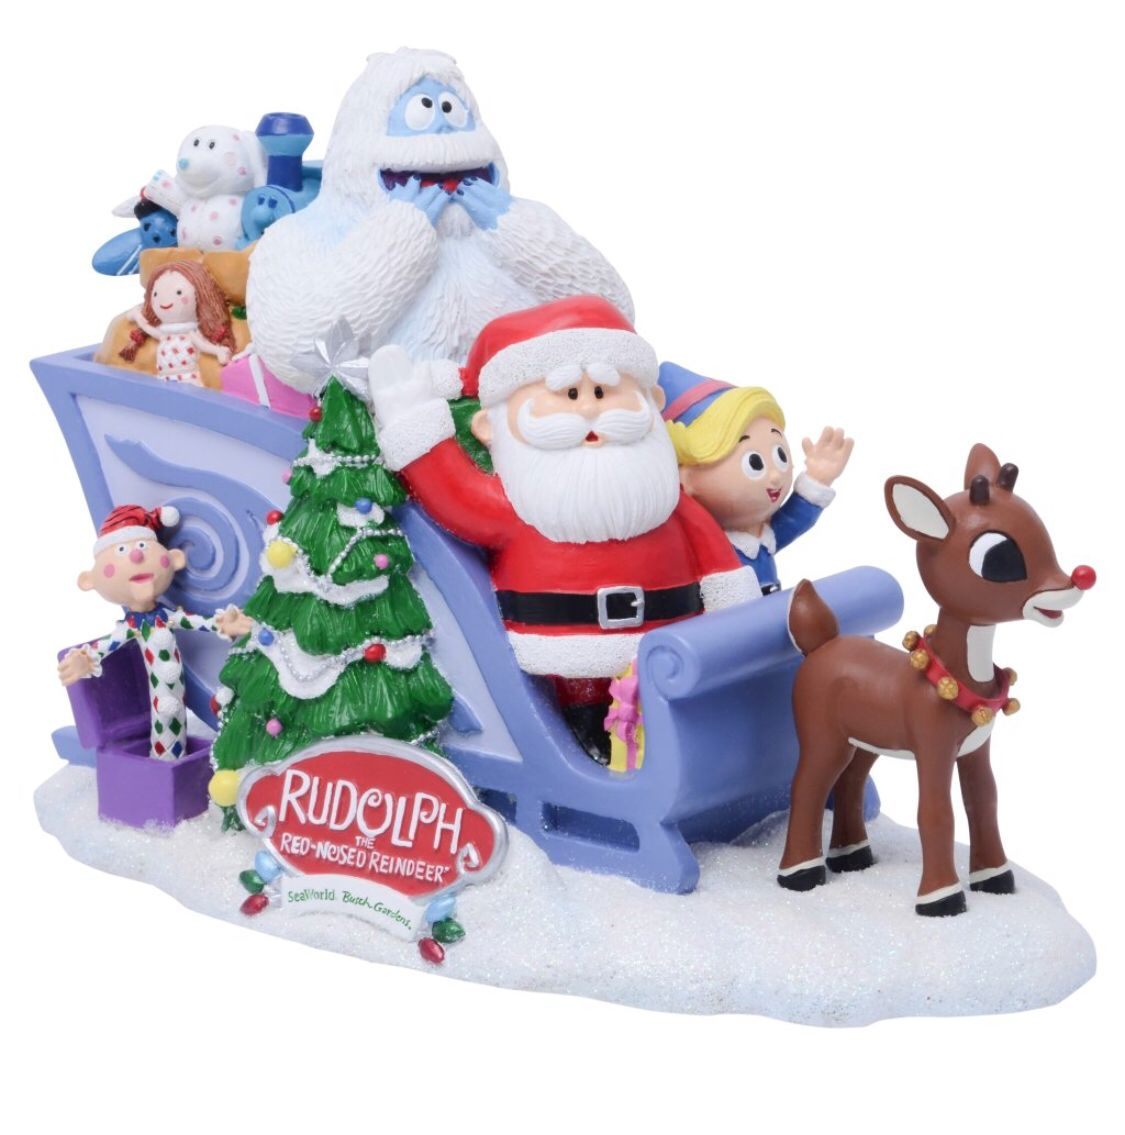 Rudolph And Friends Figurine Exclusively At Seaworld Rudolph The